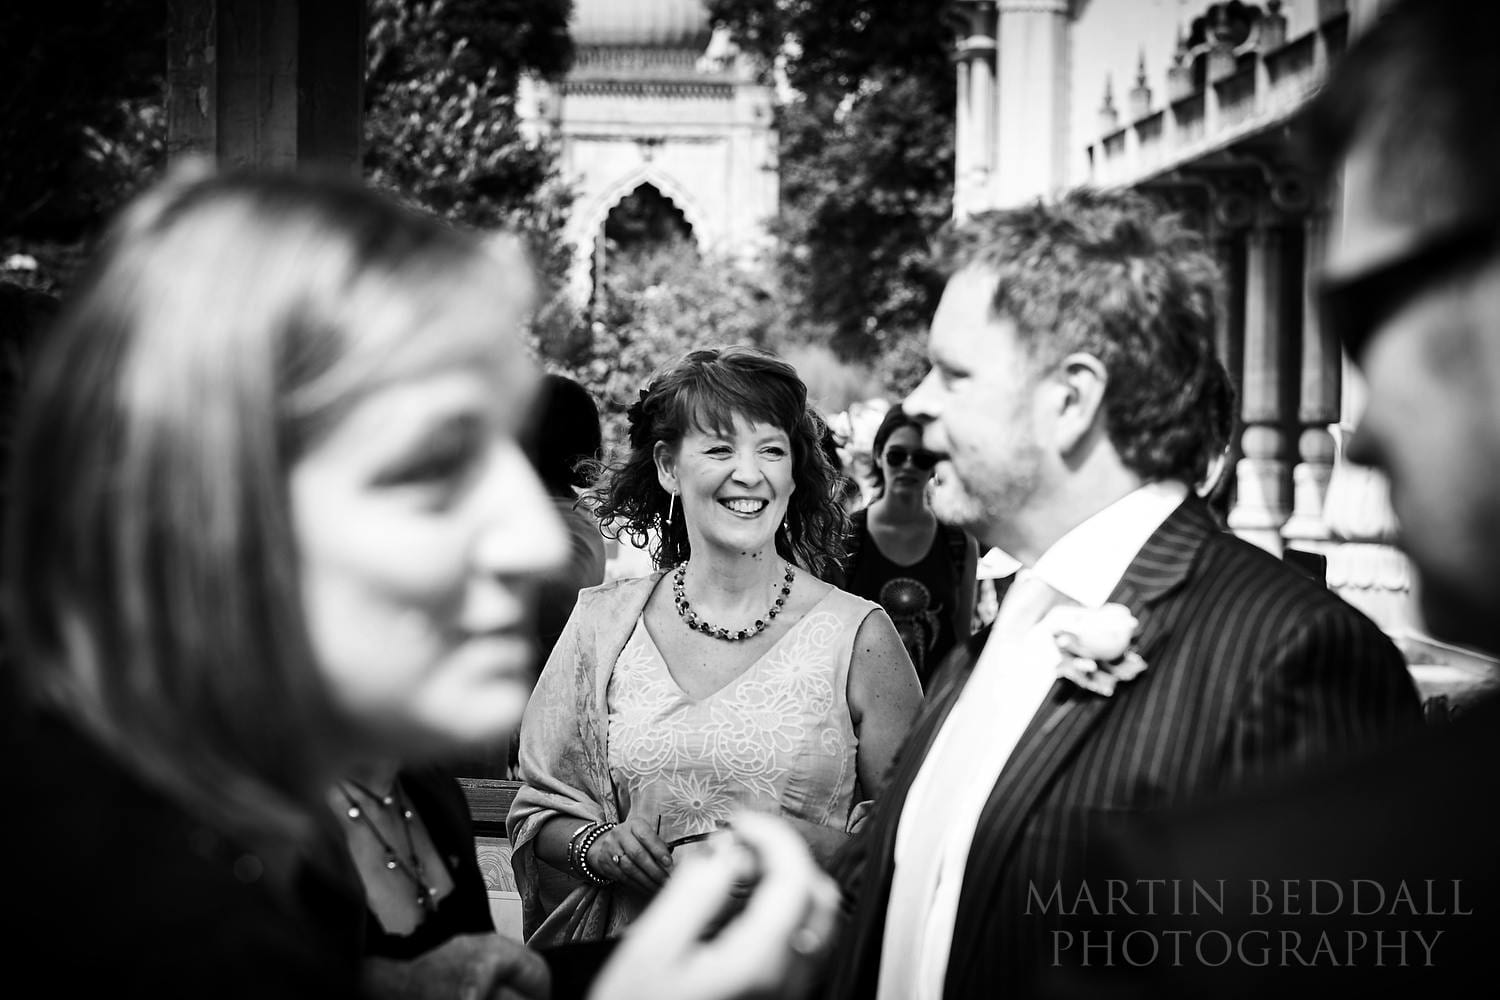 Wedding guests gather outside the Royal Pavilion in Brighton